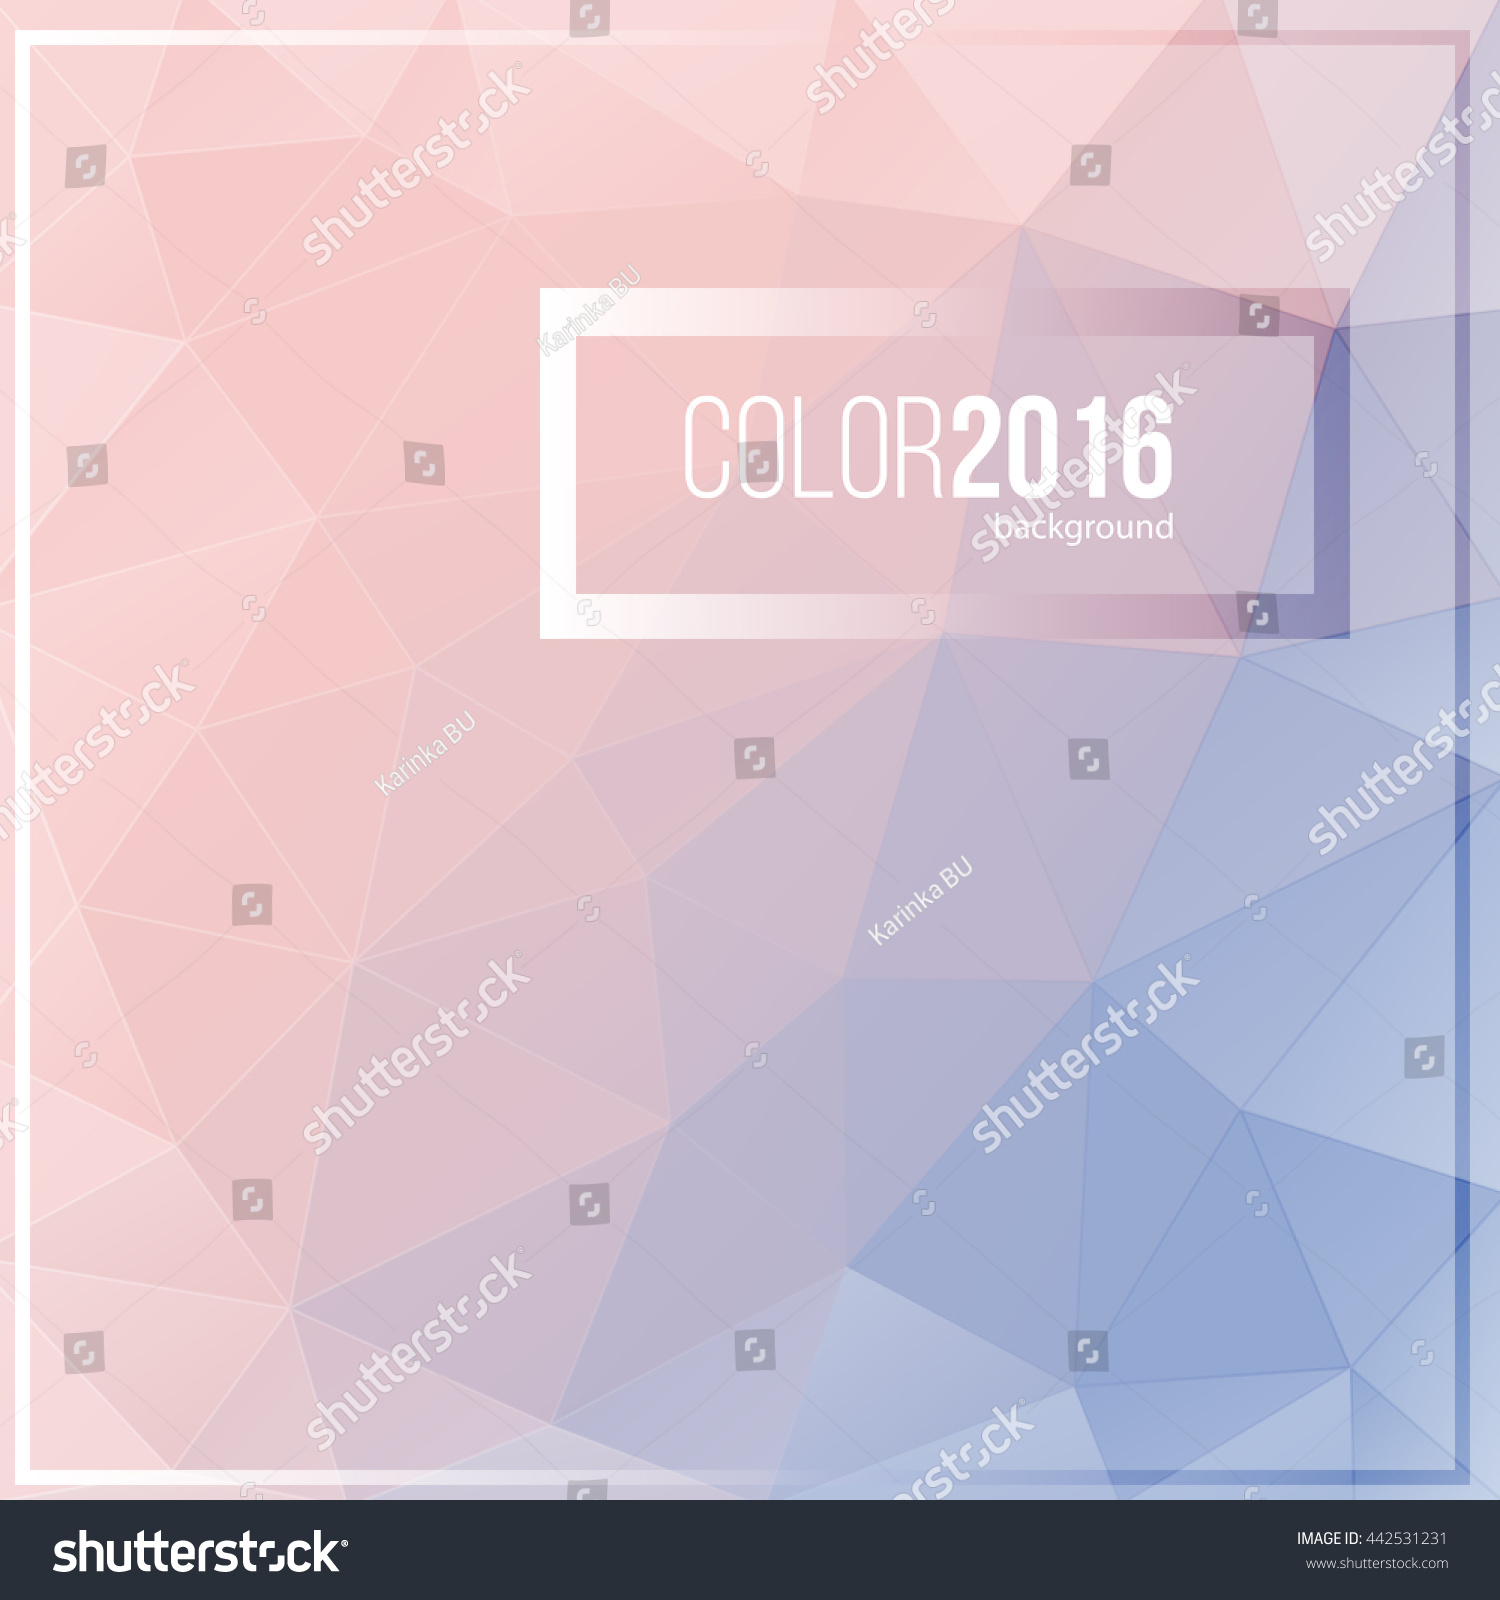 Pantone Color 2016 Pantone Color Year 2016 Rose Quartz Stock Vector Royalty Free